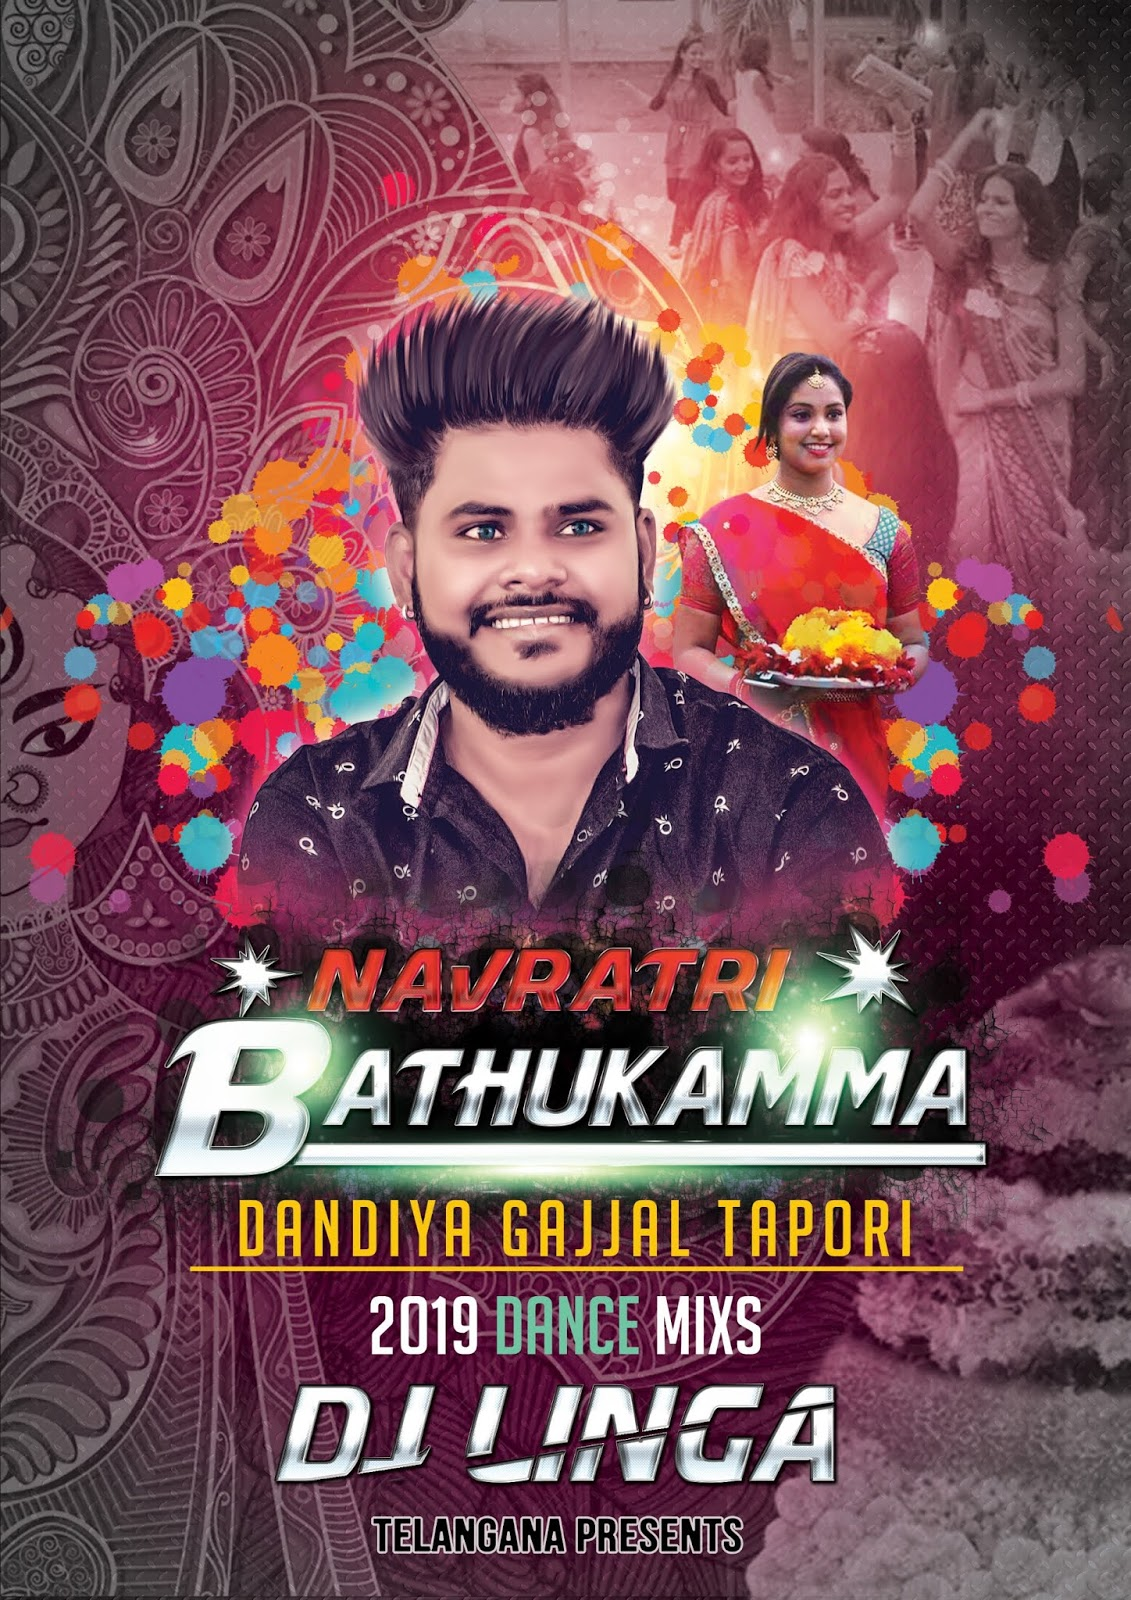 Bathukamma Dj Songs 2019, Bathukamma Dj Songs Remix, Bathukamma Dj Songs New, Bathukamma Dj Songs Telugu, Bathukamma Dj Songs New 2019, Bathukamma Dj Songs Chatal Band, Bathukamma Dj Songs Mangli, Bathukamma Dj Songs Kolatam, Bathukamma Dj Songs 2018, Bathukamma Dj Songs Bathukamma Dj Songs, Bathukamma Dj Songs And Dance, Bathukamma Dj Songs Audio, Bathukamma Dj Songs Album, Bathukamma Dj Songs And Videos, Bathukamma Dj Songs All Remix, Bathukamma Dj Songs And Chatal Band, Bathukamma Dj Songs All Mix, Bathukamma Dj Songs All Telugu, Bathukamma Dj Songs Andamaina Guvvave, Bathukamma Dj Songs Bass, Bathukamma Dj Songs Bonalu, Bathukamma Dj Songs By Mangli, Bathukamma Dj Songs Back To Back, Bathukamma Dj Songs Best, Bathukamma Dj Songs Bathukamma Dj Songs Remix, Bathukamma Dj Songs Banjara, Bathukamma Dj Songs Band, Bathukamma Dj Songs Bathukamma Dj Songs Telugu, Bathukamma Dj Songs Come, Bathukamma Dj Songs Com Telugu, Bathukamma Dj Songs Coming, Bathukamma Dj Songs Chittu Chittula Bomma, Bathukamma Dj Songs Com New, Bathukamma Dj Songs Chatal, Bathukamma Dj Songs Com 2019, Bathukamma Dj Songs Com Please, Bathukamma Dj Songs Chandamama, Bathukamma Dj Songs Dj Songs, Bathukamma Dj Songs Dance, Bathukamma Dj Songs Download, Bathukamma Dj Songs Dance 2019, Bathukamma Dj Songs Dj Remix, Bathukamma Dj Songs Dandiya, Bathukamma Dj Songs Dance Remix, Bathukamma Dj Songs Download 2017, Bathukamma Dj Songs Full Bass, Bathukamma Dj Songs Full, Bathukamma Dj Songs Fast Beat, Bathukamma Dj Songs Full Remix, Bathukamma Dj Songs Folk, Bathukamma Dj Songs Fast, Bathukamma Dj Songs Full Video, Bathukamma Dj Songs Full Bass Chatal Band, Bathukamma Dj Songs Free Download 2017, Bathukamma Dj Songs Free Download, Bathukamma Dj Songs Gallu Galluna, Bathukamma Dj Songs Hd, Bathukamma Dj Songs Hindi, Bathukamma Dj Songs Hyderabad, Bathukamma Dj Songs Hard Bass, Hyderabad Bathukamma Songs Dj Remix, Hyd Bathukamma Dj Songs, Hyderabadi Bathukamma Dj Songs, Bathukamma Dj Songs In Telugu, Bathukamma Dj Songs In 2019, Bathukamma Dj Songs In Chatal Band, Bathukamma Dj Songs In Remix, Bathukamma Dj Songs In 2018, Bathukamma Dj Songs In Kolatam, Bathukamma Dj Songs In New, Bathukamma Dj Songs In Dance, Bathukamma Dj Songs In Telangana, Bathukamma Dj Songs In Telugu Remix, Bathukamma Dj Songs Jukebox, Bathukamma Dj Song Jbl, Bathukamma Songs Telangana Dj Jukebox, Bathukamma Dj Songs Kutty, Bathukamma Dj Songs Kolalu, Bathukamma Dj Songs Kotha Patalu, Bathukamma Dj Songs Kolatam 2019, Bathukamma Dj Songs Kothari, Bathukamma Dj Songs Kuthu Songs, Bathukamma Dj Songs Kolokolo, Bathukamma Dj Songs Kolatam Patalu, Bathukamma Dj Songs Kavali, Bathukamma Dj Songs Latest 2019, Bathukamma Dj Songs Lyrics, Latest Telugu Bathukamma Dj Songs 2018, Latest Bathukamma Songs Dj Mix, Lambadi Bathukamma Dj Songs, Bathukamma Dj Songs Telugu Lo, Latest Bathukamma Dj Songs 2018, Bathukamma Dj Songs Madhu Priya, Bathukamma Dj Songs Mix Chatal Band, Bathukamma Dj Songs Mp3, Bathukamma Dj Songs Mashup, Bathukamma Dj Songs Music, Bathukamma Dj Songs Mangali, Bathukamma Dj Songs Movie, Bathukamma Dj Songs Mix 2019, Bathukamma Dj Songs New 2018, Bathukamma Dj Songs Nirumala, Bathukamma Dj Songs Nirmala, Bathukamma Dj Songs New Telugu, Bathukamma Dj Songs New Remix, Bathukamma Dj Songs Nonstop, Bathukamma Dj Songs Naa Songs, Bathukamma Dj Songs Naa Download, Bathukamma Dj Songs Old, Bathukamma Dj Songs Only, Bathukamma Dj Songs Open, Bathukamma Dj Songs Of 2019, Bathukamma Dj Songs O Nirumala, O Puvvula Bomma Bathukamma Dj Songs, Dj Songs Of Bathukamma, Bathukamma Dj Songs Please, Bathukamma Dj Songs Please Come, Bathukamma Dj Songs Play, Bathukamma Dj Songs Patalu, Bathukamma Dj Songs Private, Bathukamma Dj Songs Piano, Bathukamma Dj Songs Portal, Bathukamma Dj Songs Pankhida, Bathukamma Dj Songs Pad Band, Bathukamma Dj Songs Padal, Bathukamma Dj Songs Qawwali, Bathukamma Dj Songs Remix Telugu, Bathukamma Dj Songs Run Developer, Bathukamma Dj Songs Remix 2018, Bathukamma Dj Songs Remix Chatal Band, Bathukamma Dj Songs Rama Rama, Bathukamma Dj Songs Remix New, Bathukamma Dj Songs Remix Dance, Bathukamma Dj Songs Run Developer Dandi, Bathukamma Dj Songs Steps, Bathukamma Dj Songs Songs, Bathukamma Dj Songs Status, Bathukamma Dj Songs Speed, Bathukamma Dj Songs St, Bathukamma Dj Songs Super, Bathukamma Dj Songs Suma, Bathukamma Dj Songs Singidi, Bathukamma Dj Songs Shivuni Muddula Gumma, Bathukamma Dj Songs Superhit, Ts Bathukamma Dj Songs, Bathukamma Dj Songs Telugu Remix, Bathukamma Dj Songs Telugu 2018, Bathukamma Dj Songs Telugu New, Bathukamma Dj Songs Tv9, Bathukamma Dj Songs Trance, Bathukamma Dj Songs Telugu Video, Bathukamma Dj Songs Uriki Utharana, Uyyala Bathukamma Songs Dj, Bathukamma Bathukamma Uyyalo Dj Songs, Bathukamma Uyyalo Dj Songs Telangana, Bathukamma Dj Songs V6 2019, Bathukamma Dj Songs Village, Bathukamma Dj Songs V6 2015, Bathukamma Dj Songs Video Telugu, Bathukamma Dj Songs V6 2016, Bathukamma Dj Songs V6 2018, Bathukamma Dj Songs V6 2017, Bathukamma Dj Songs Video Padal, Bathukamma Dj Songs With Chatal Band, Bathukamma Dj Songs With Kolatam, Bathukamma Dj Songs Whatsapp Status, Bathukamma Dj Songs With Steps, Bathukamma Dj Songs With Remix, Bathukamma Dj Songs With Videos, Bathukamma Dj Songs With Lyrics, Bathukamma Dj Songs With Chatal, Bathukamma Songs With Dj, New Bathukamma Dj Songs, New Bathukamma Dj Songs 2019, New Bathukamma Dj Songs 2018 Mangli, New Bathukamma Dj Songs Telugu, New Bathukamma Dj Songs Remix, New Bathukamma Dj Songs 2019 Mangli, New Bathukamma Dj Songs Telugu 2019, New Bathukamma Dj Songs 2018, Bathukamma New Songs Telugu 2018 Dj Remix, Telangana Bathukamma New Dj Songs, Bathukamma Dj Songs 2019 New, Bathukamma Dj Songs 2015, Bathukamma Dj Songs 2019 Telugu, Bathukamma Dj Songs 2018 V6, Bathukamma Dj Songs 2019 Remix, Bathukamma Dj Songs 2019 New Remix, Bathukamma Dj Songs 30 Minutes, Bathukamma 3d Dj Songs, 6tv Bathukamma Dj Songs 2016, Bathukamma Dj Songs 8d